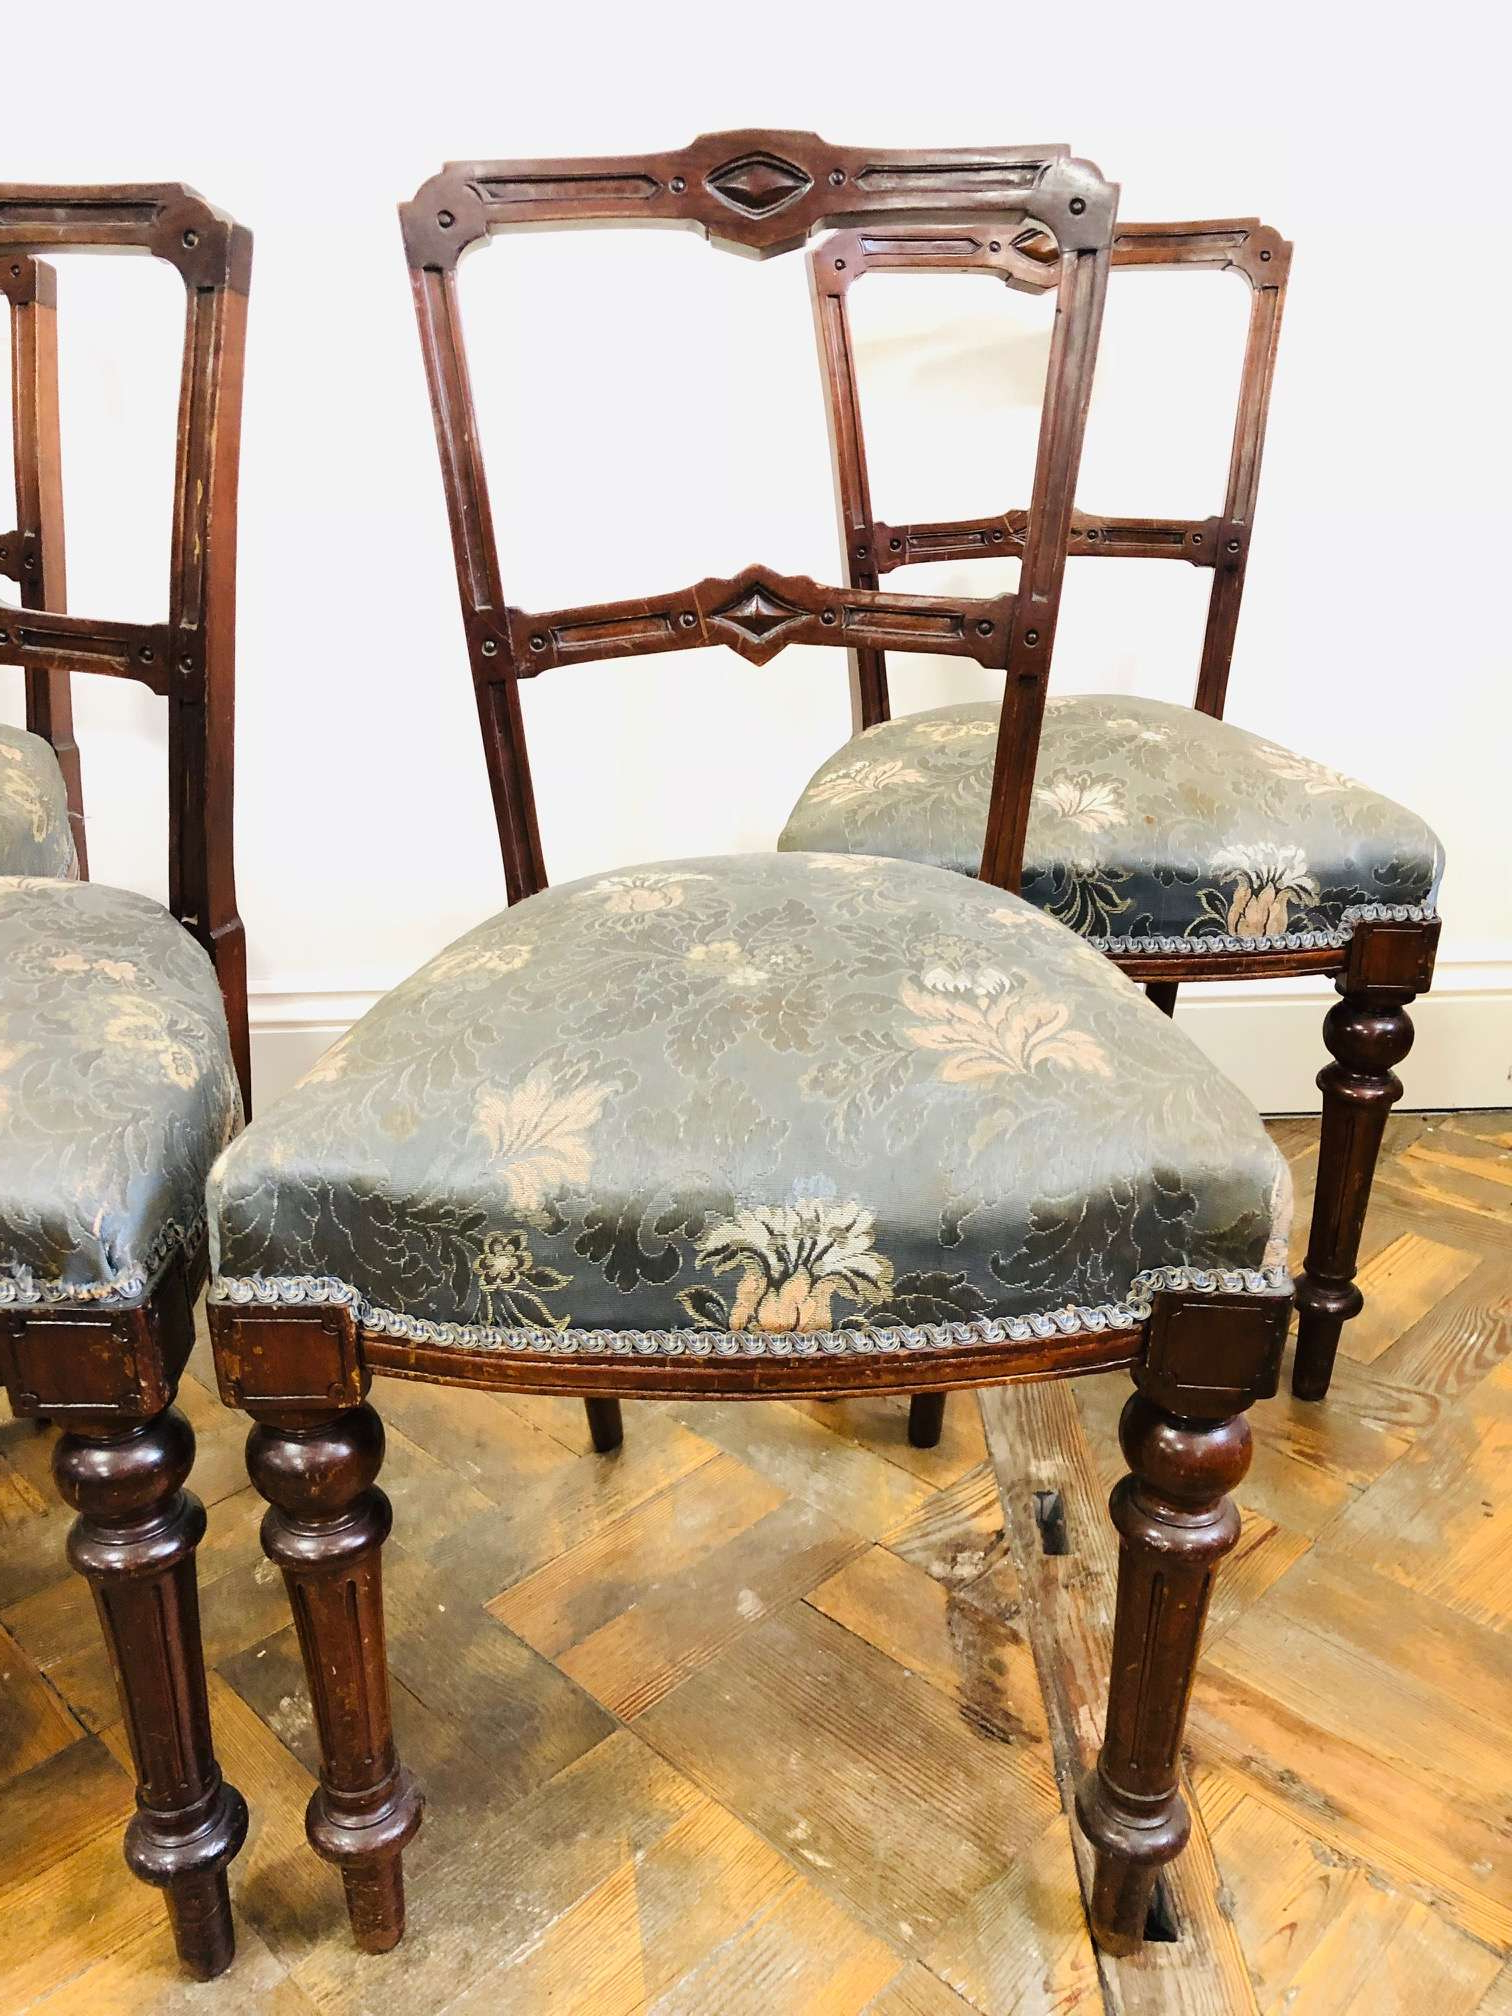 Walnut Dining Chairs 2 Of 3 - The Penderyn Furniture Co. intended for Most Recent Rossiter 3 Piece Dining Sets